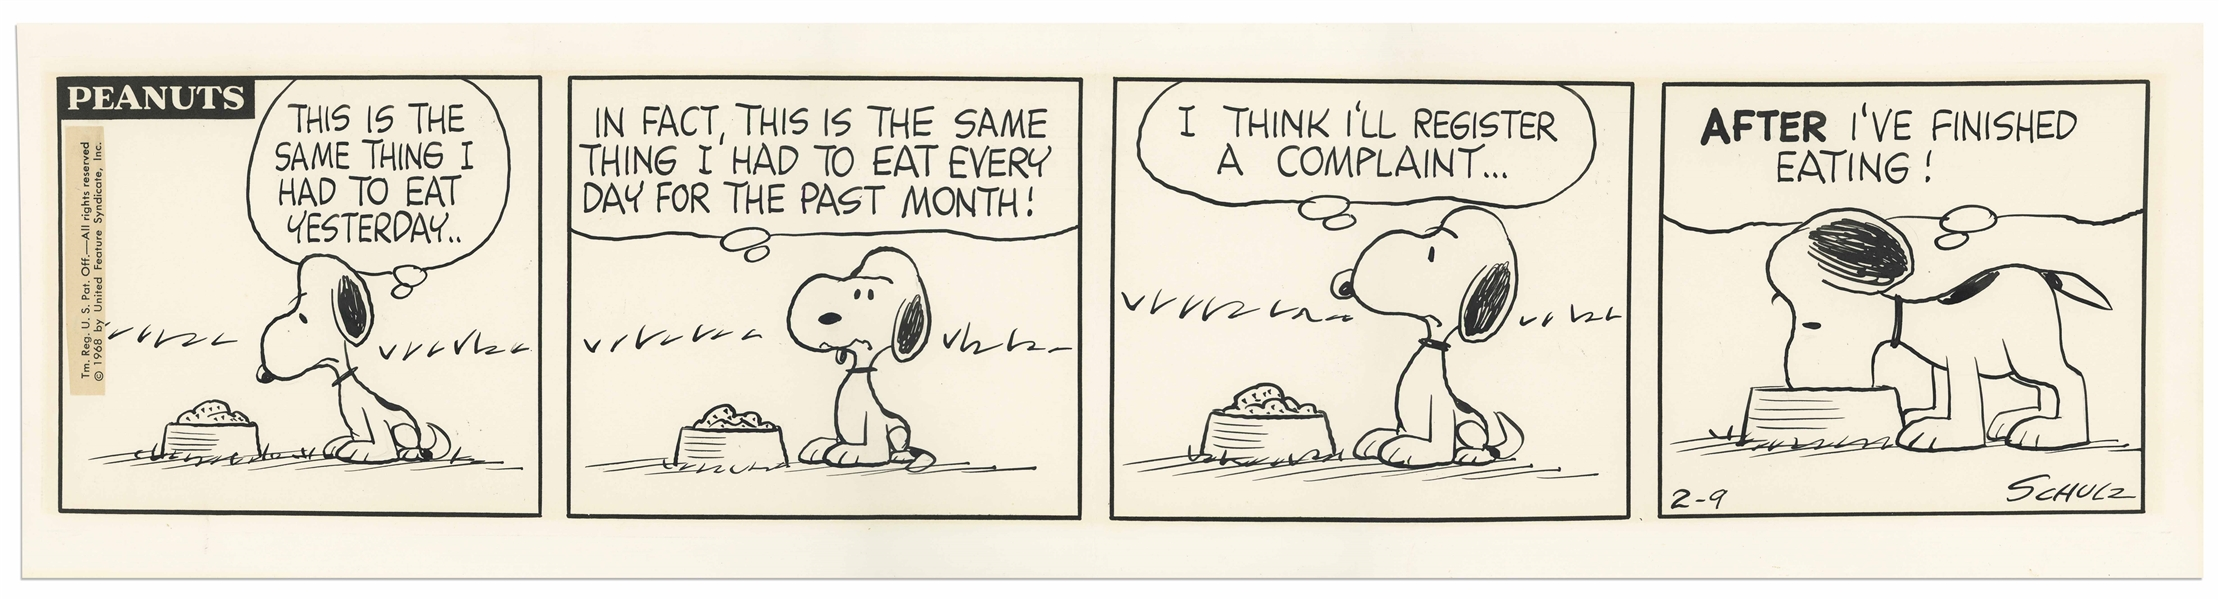 Charles Schulz Hand-Drawn & Inscribed ''Peanuts'' Comic Strip From 1968 Featuring Snoopy